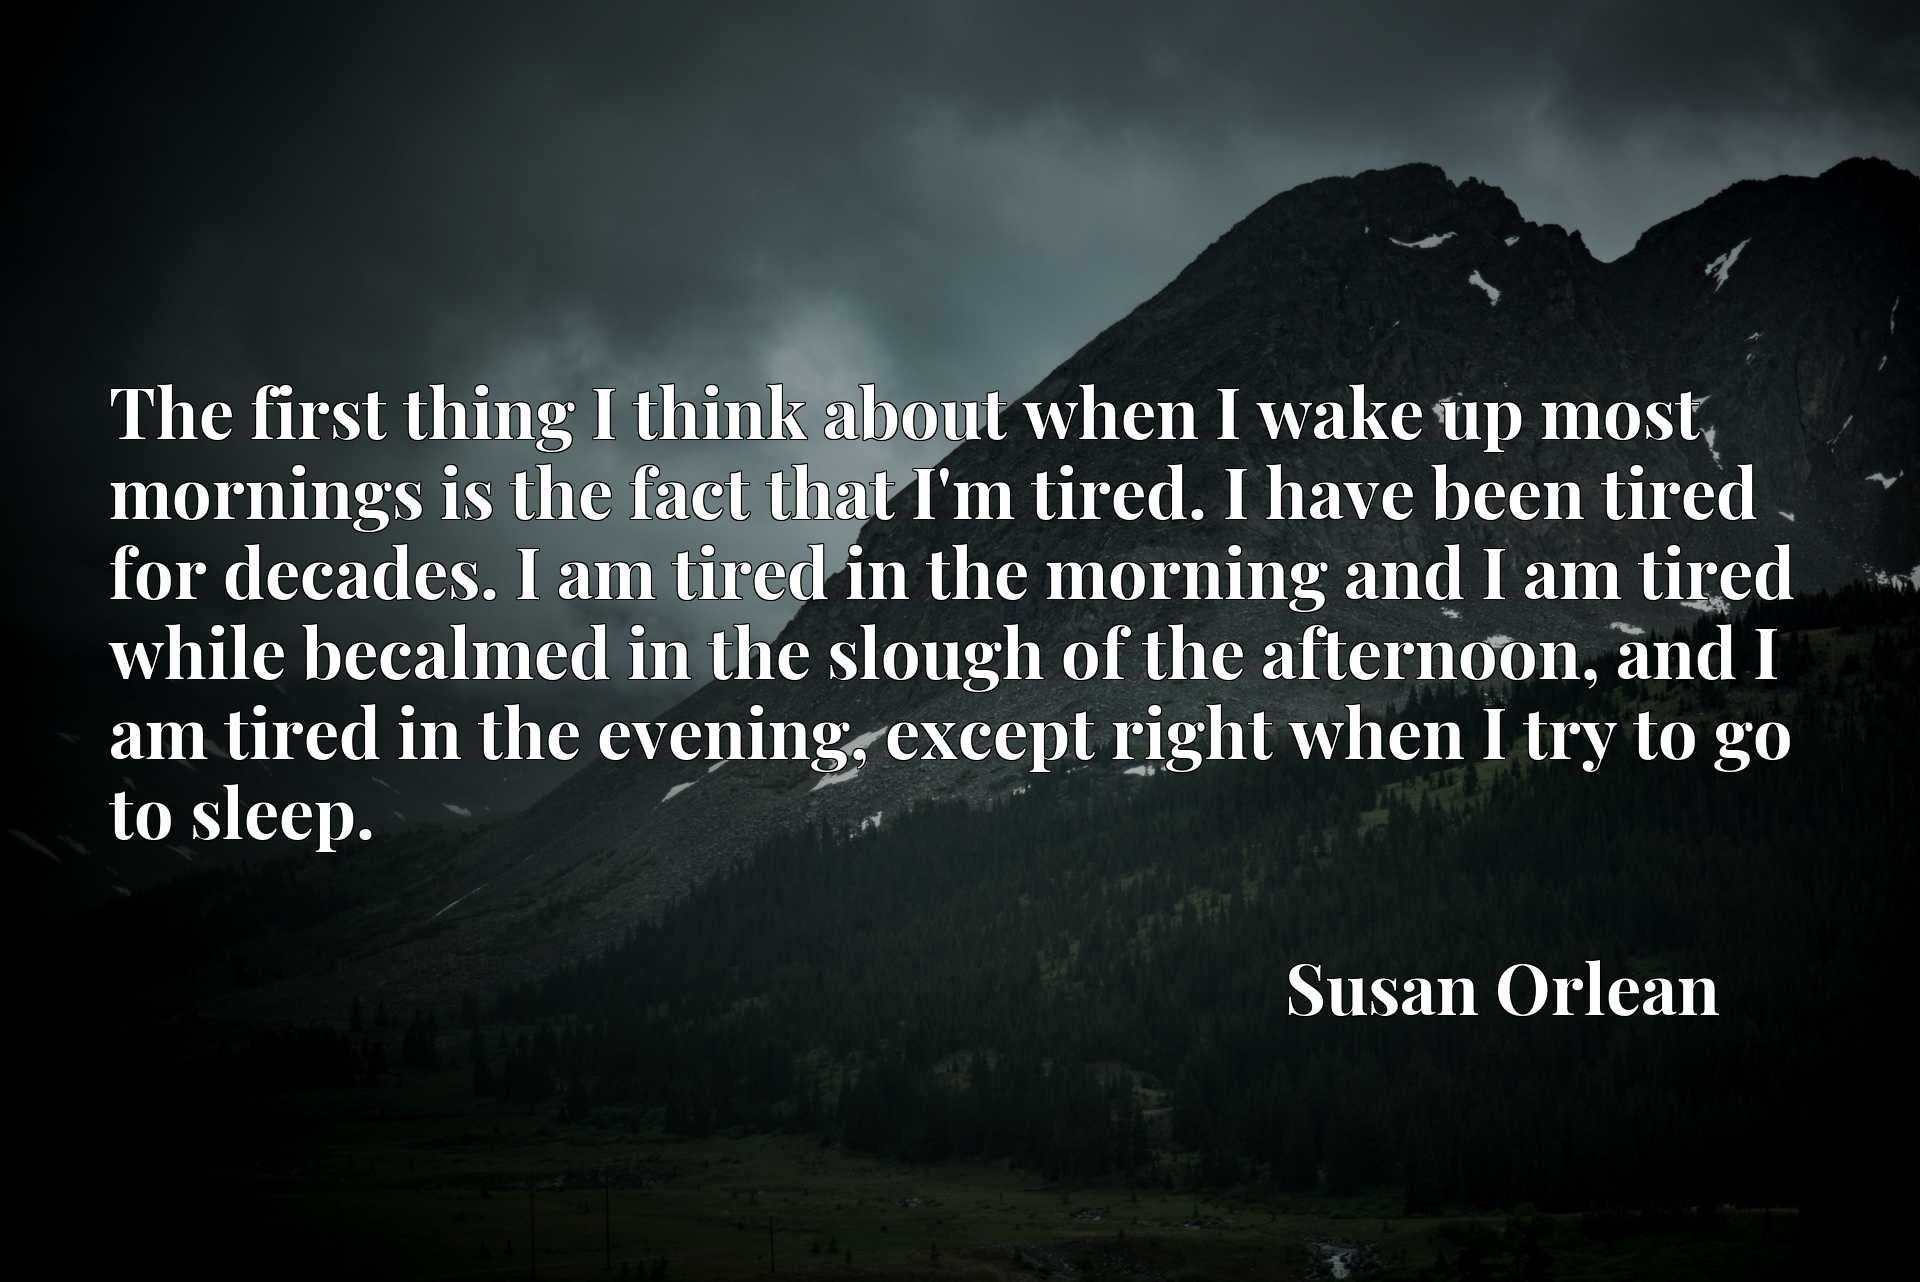 The first thing I think about when I wake up most mornings is the fact that I'm tired. I have been tired for decades. I am tired in the morning and I am tired while becalmed in the slough of the afternoon, and I am tired in the evening, except right when I try to go to sleep.